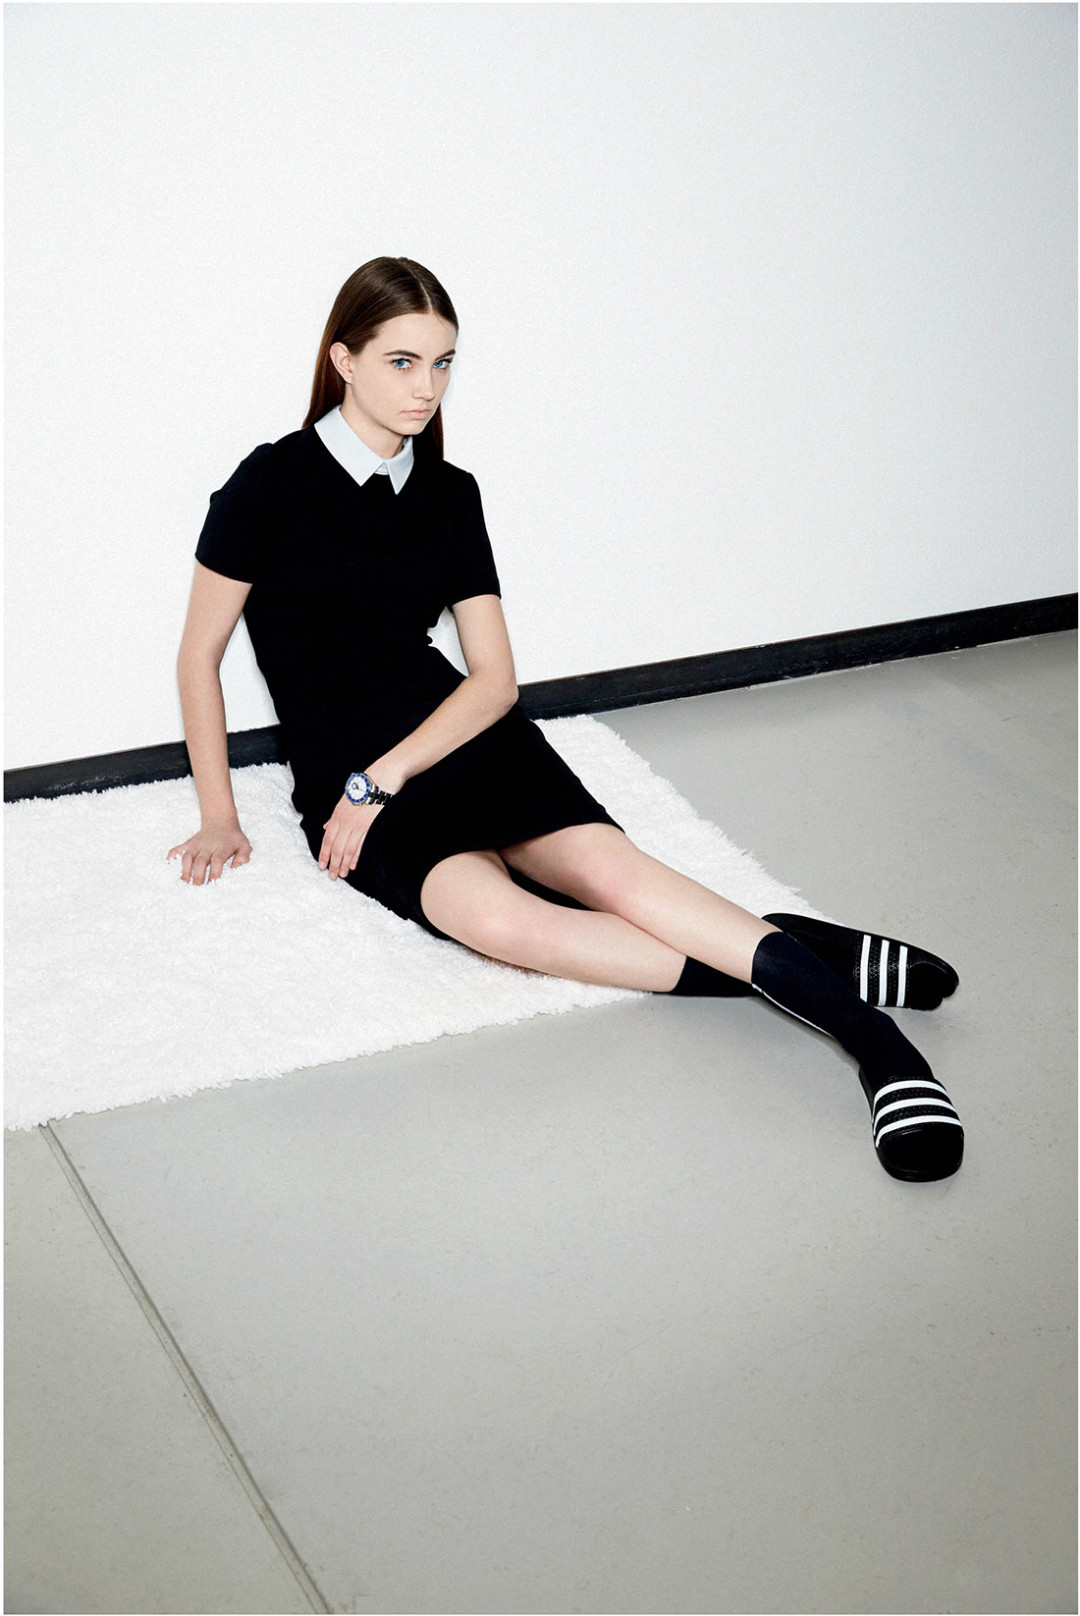 0215 plain spoken black dress socks dthdj6